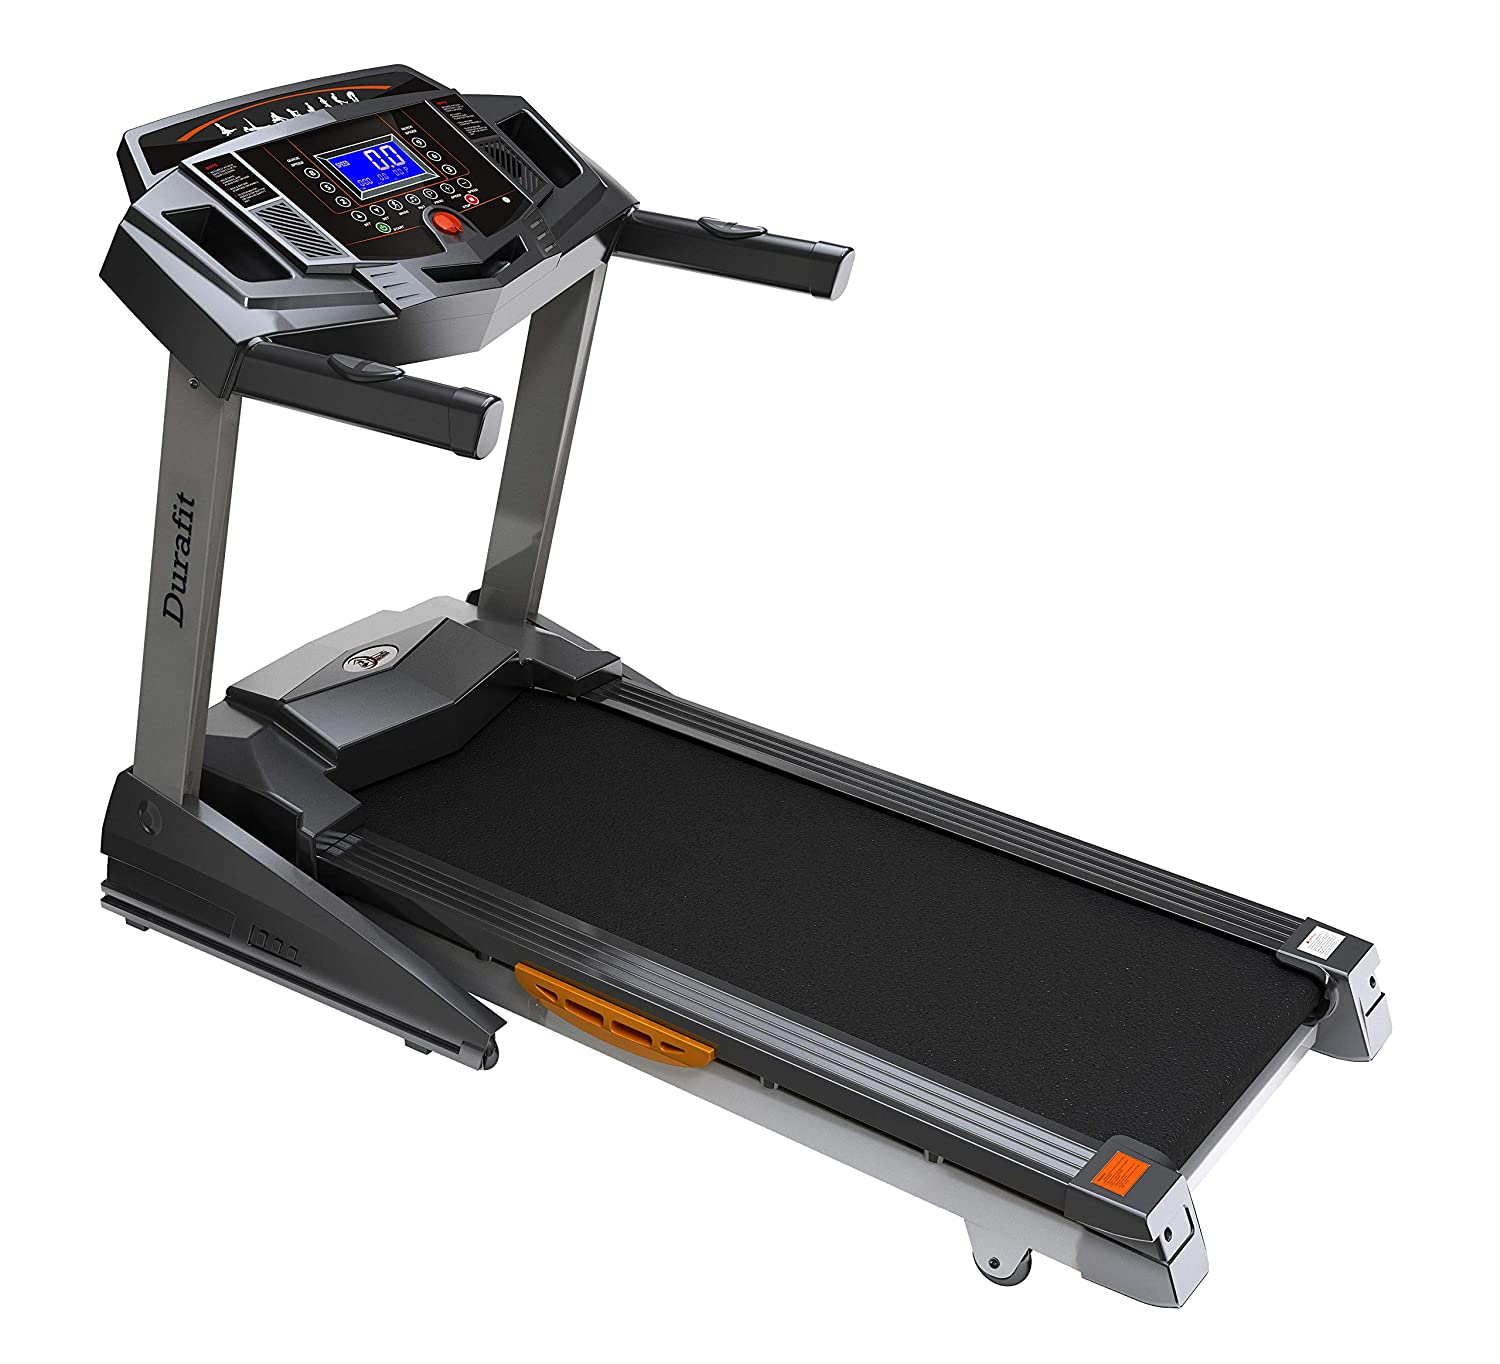 Durafit - Sturdy, Stable and Strong Surge 2.0 HP (Peak 4.0